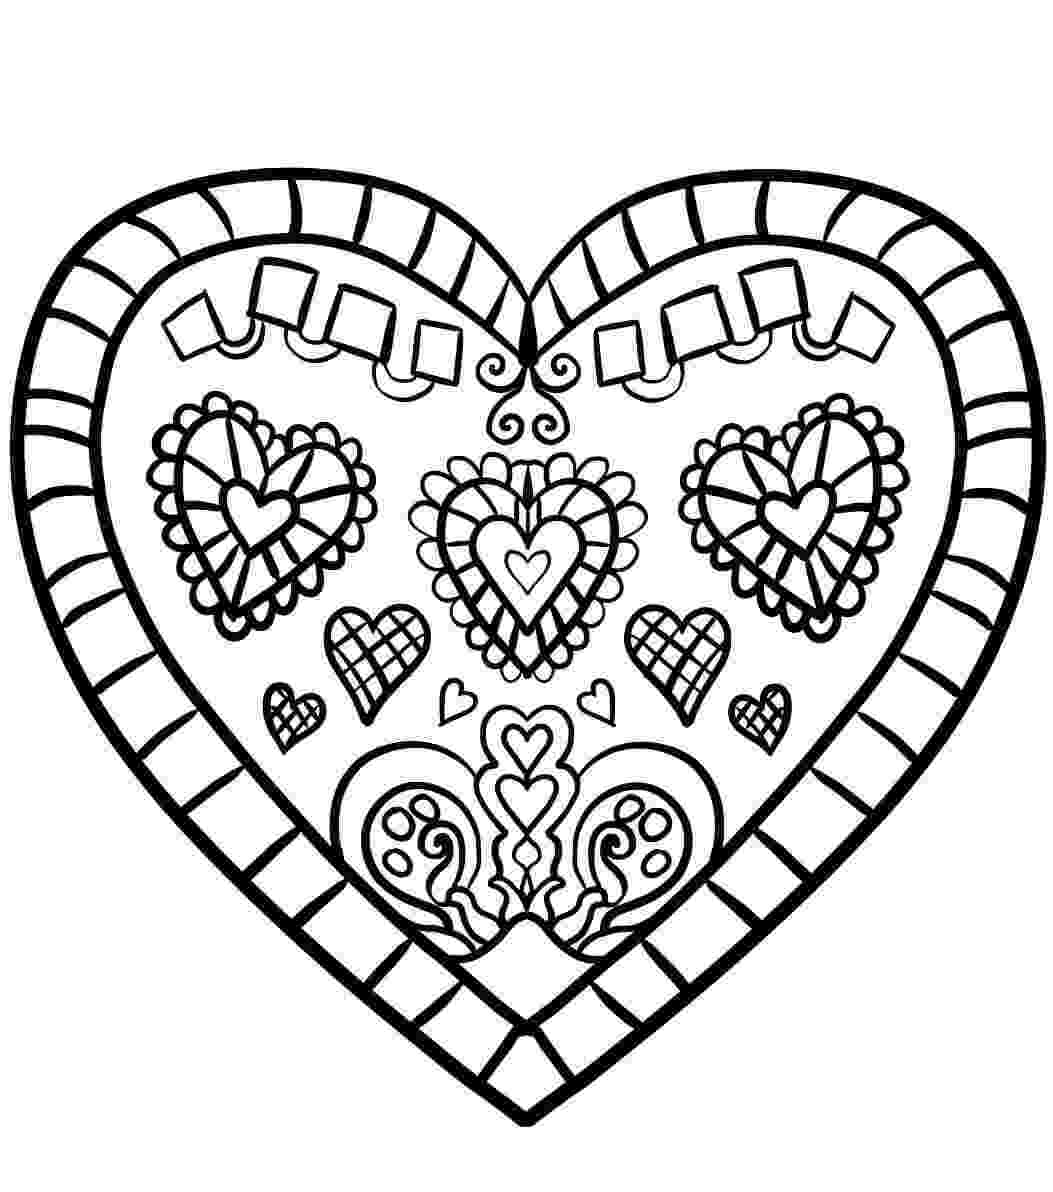 printable heart coloring pages free printable heart coloring pages for kids printable pages heart coloring